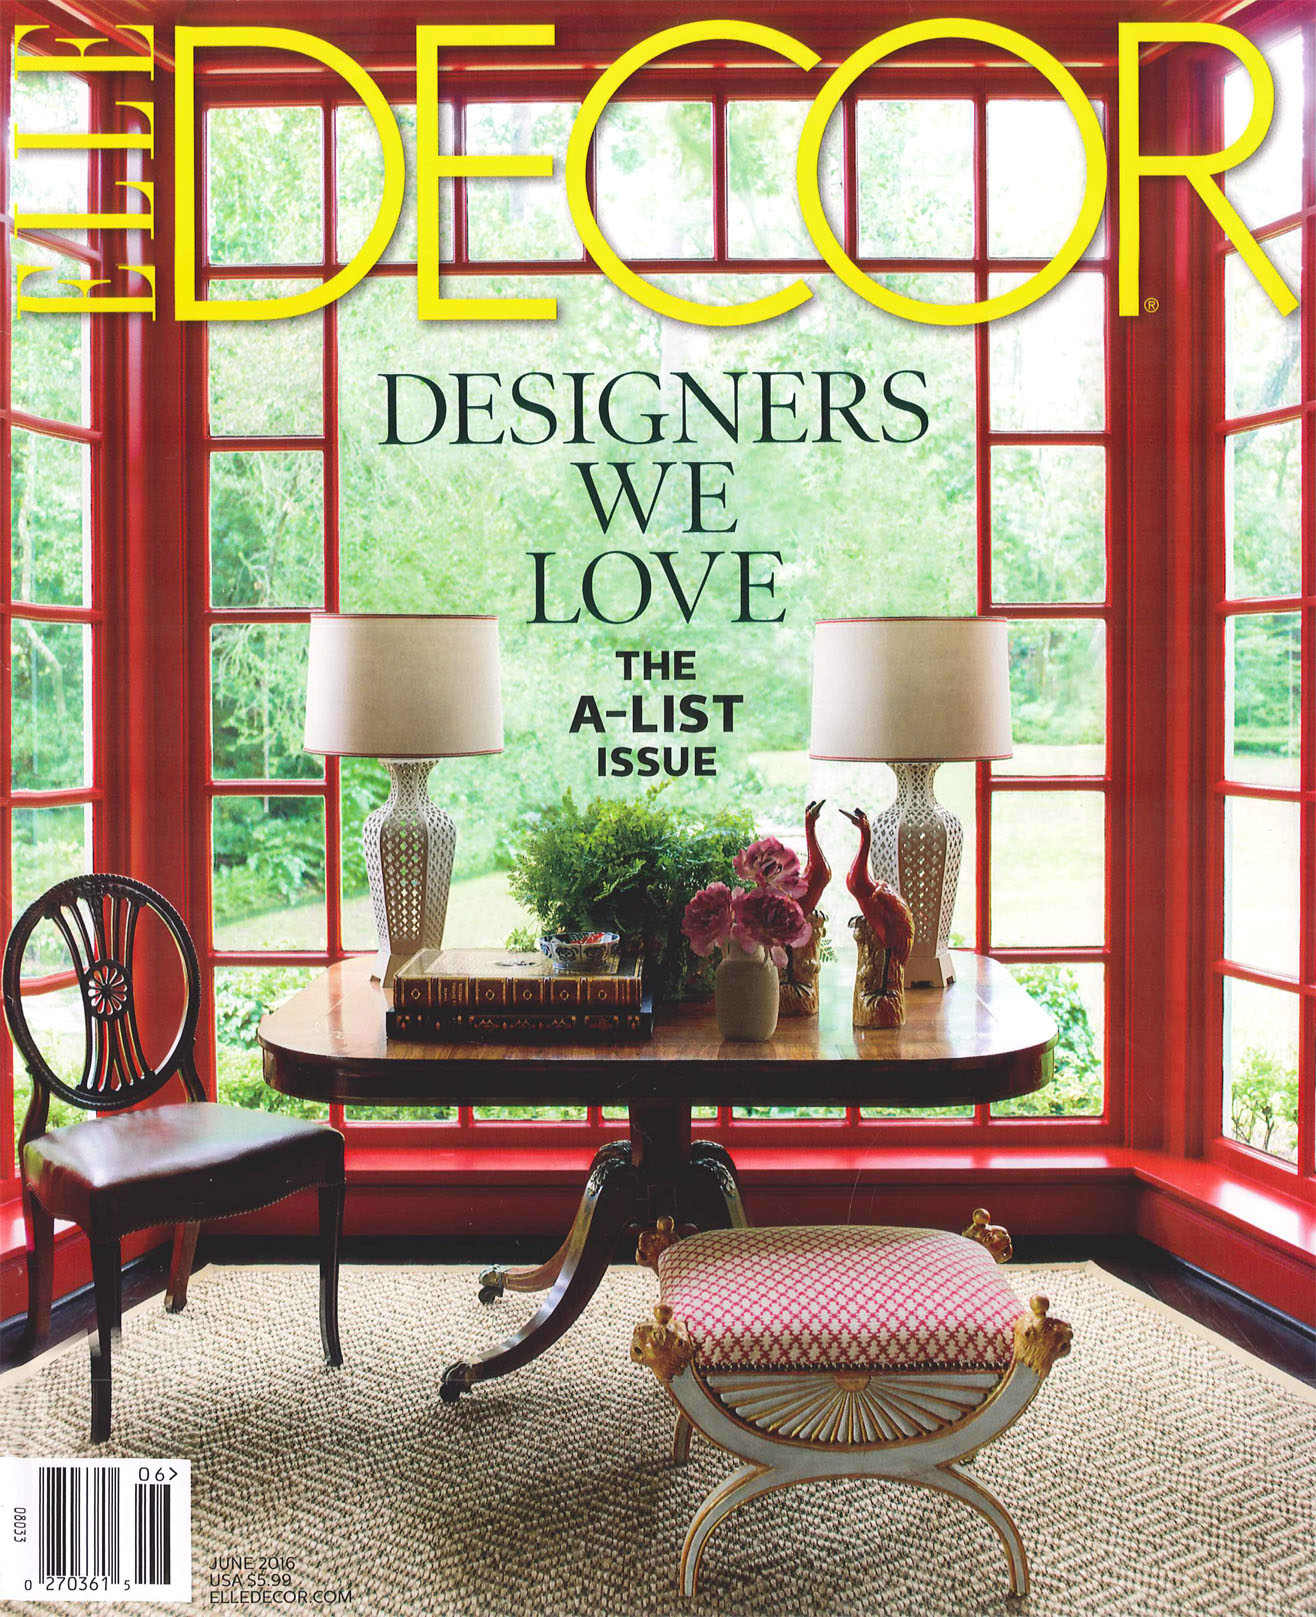 3 elle+decore+june+2016+cover+new.jpg